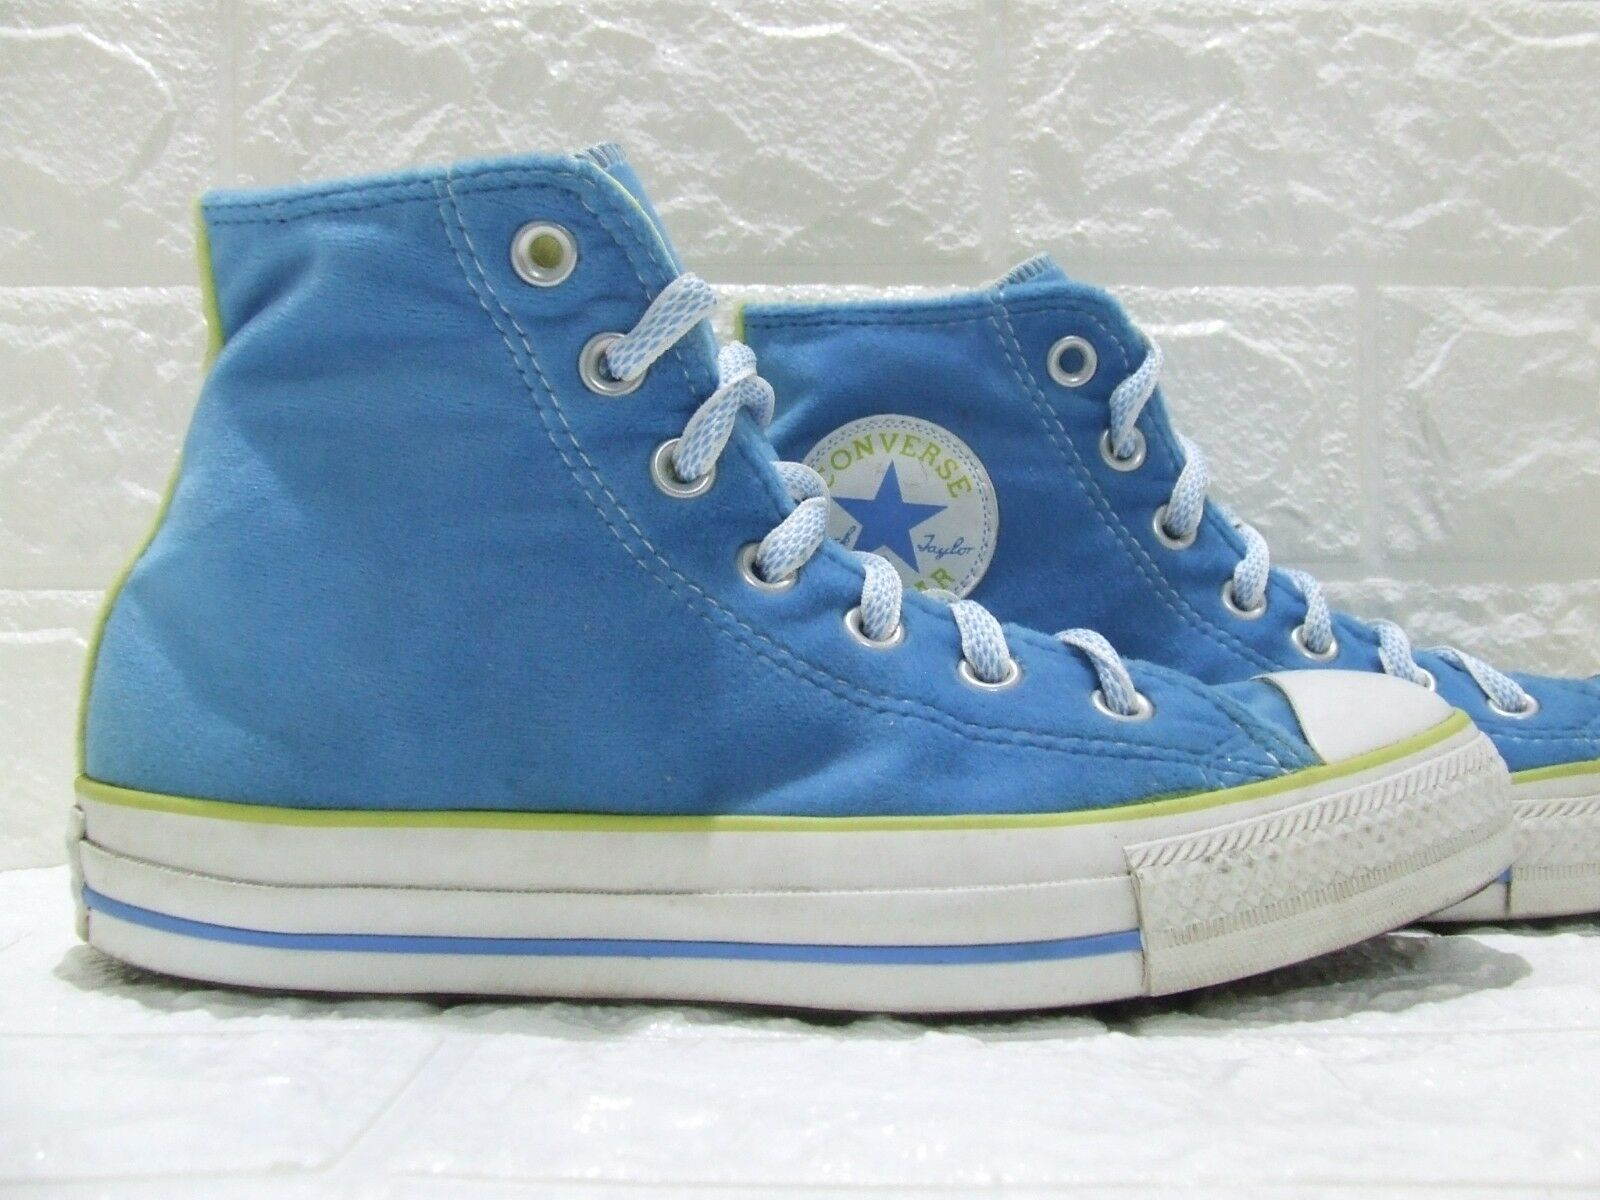 SHOES MAN WOMAN VINTAGE CONVERSE ALL STAR size 5 - 37,5 (025)